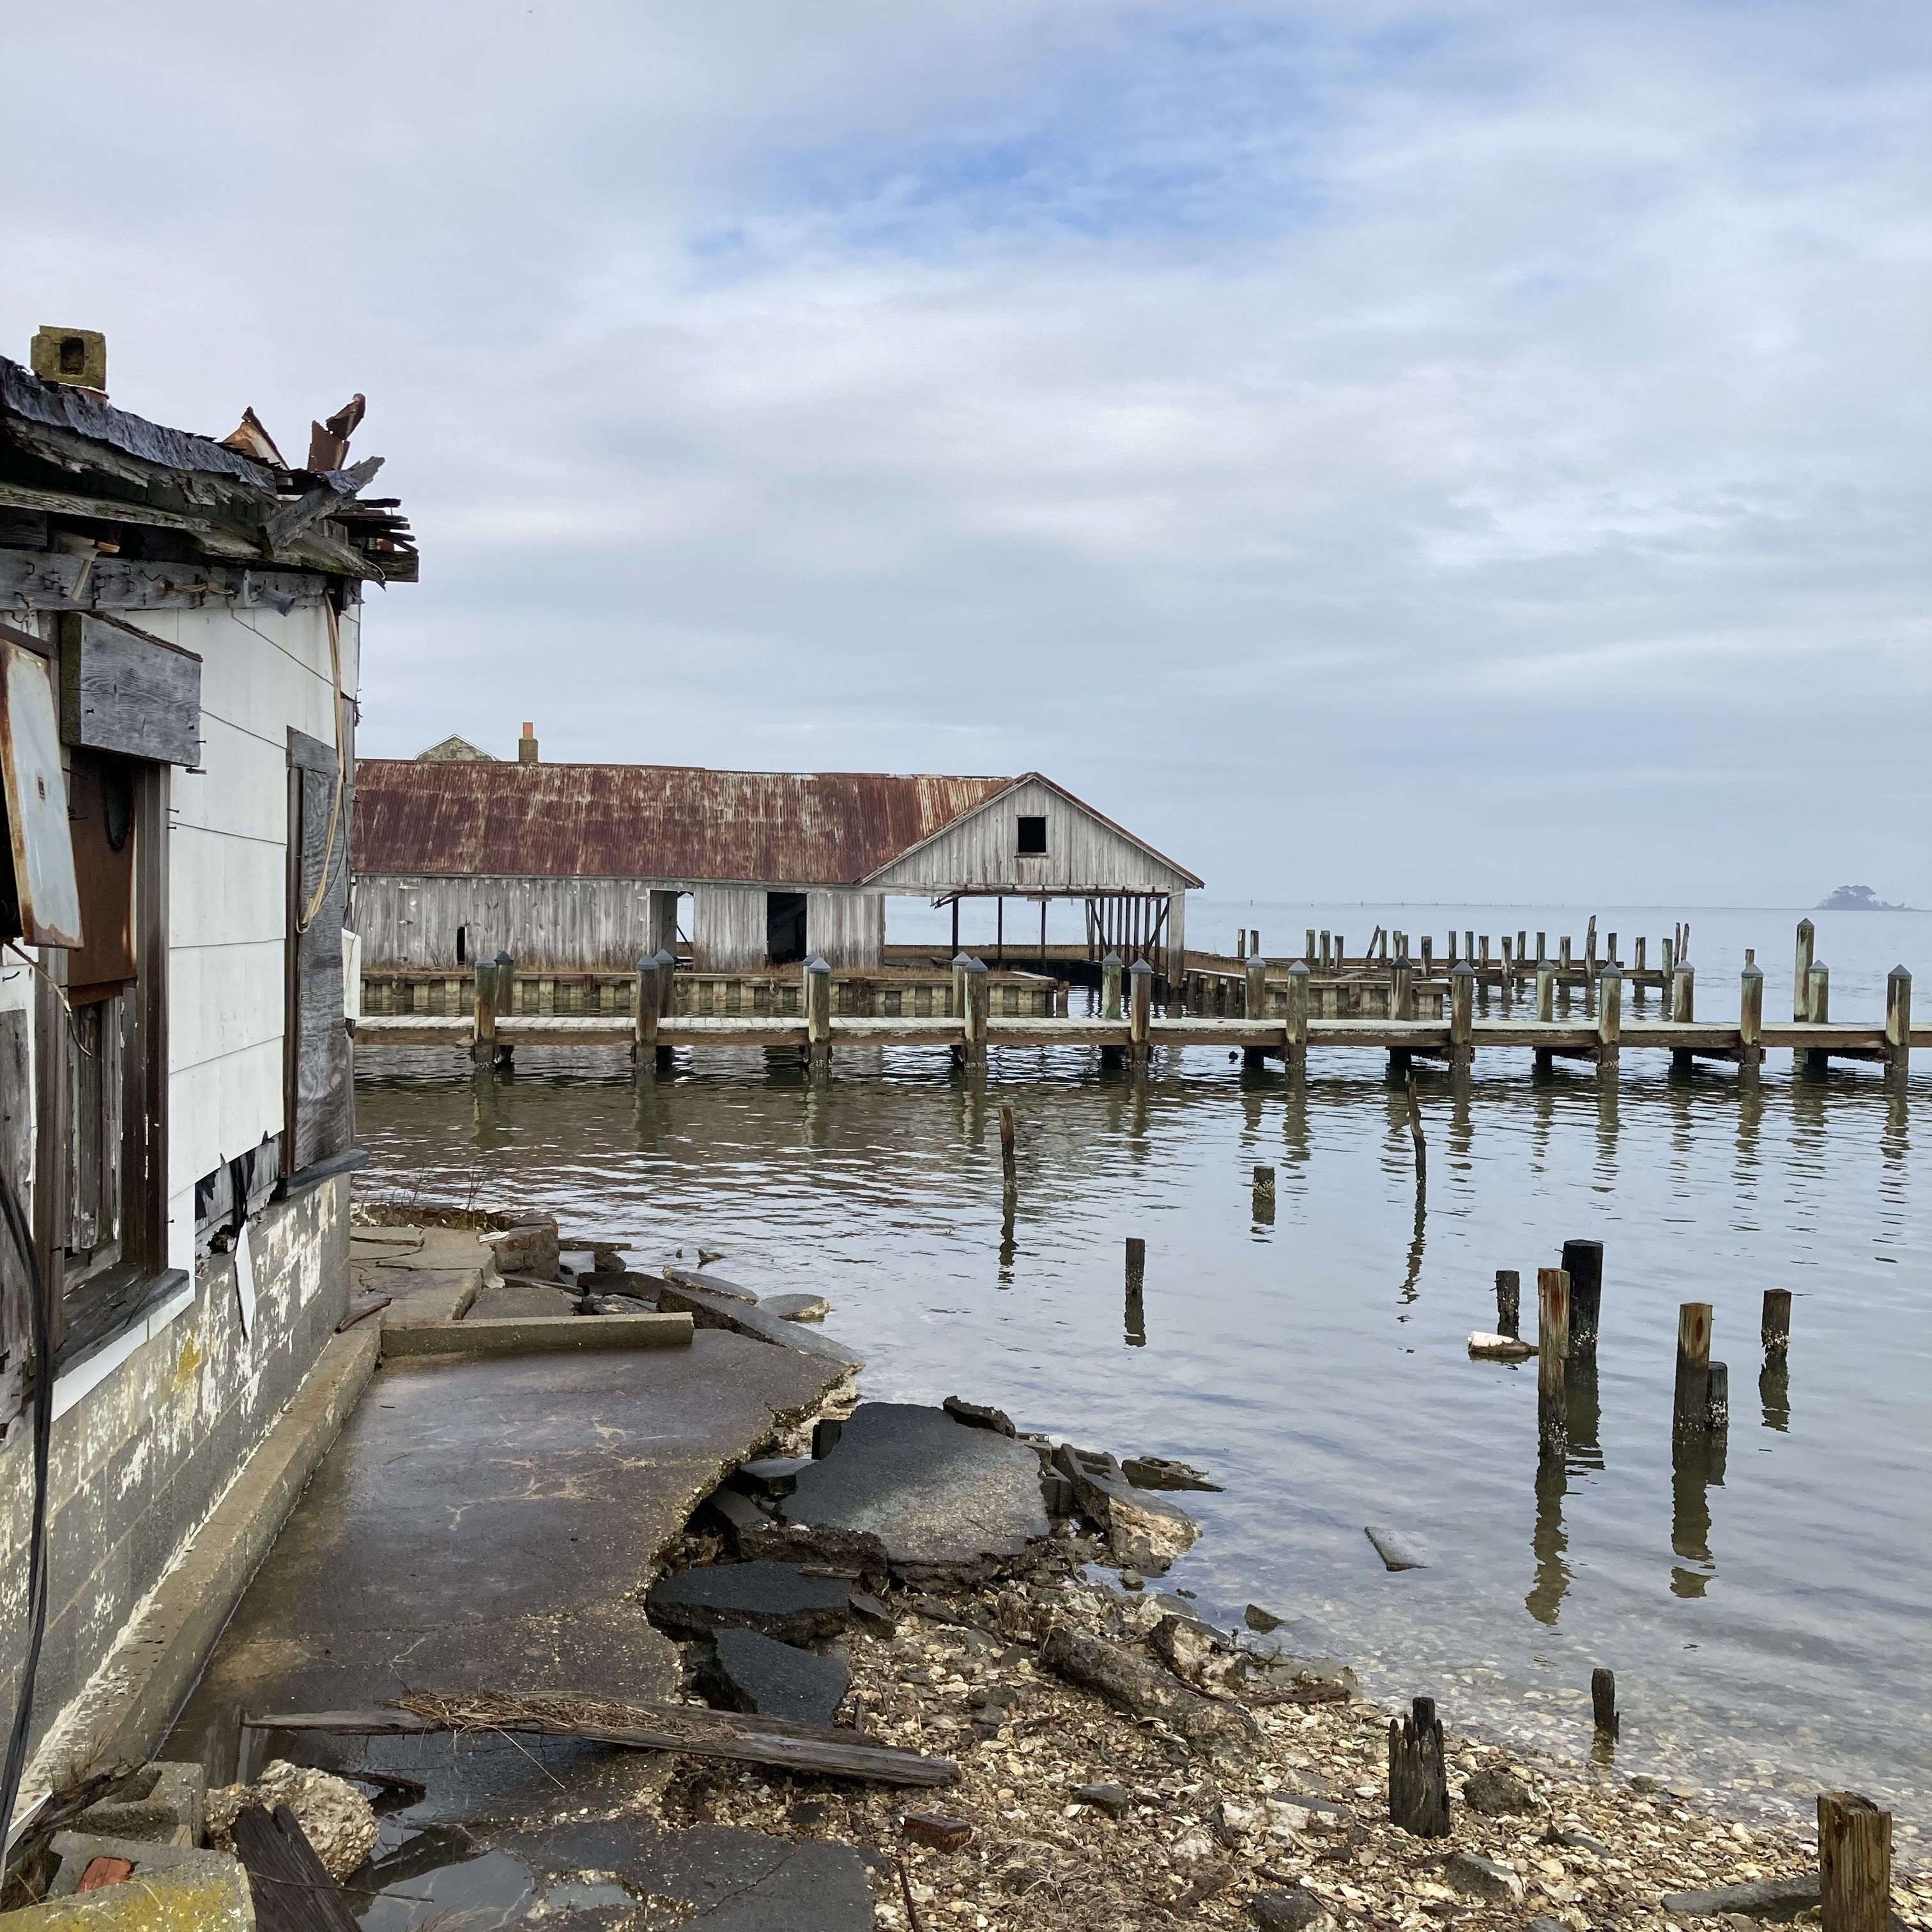 A pier on an oyster farm that has sustained storm damage.